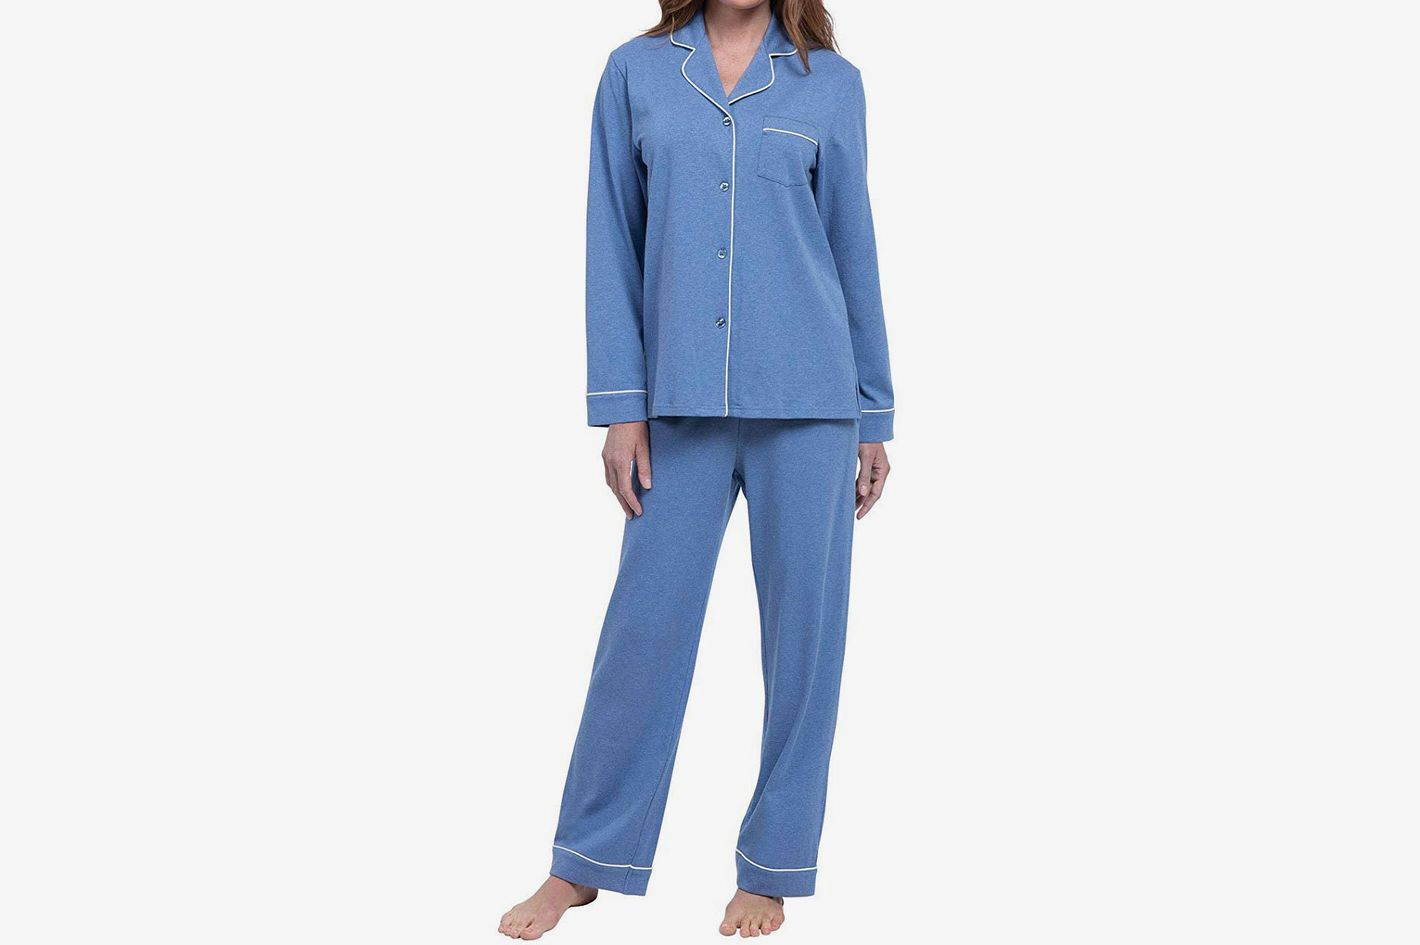 d6aebc7ced Best cotton pajama set. PajamaGram Pajamas for Women - Cotton Jersey Womens  Pajamas